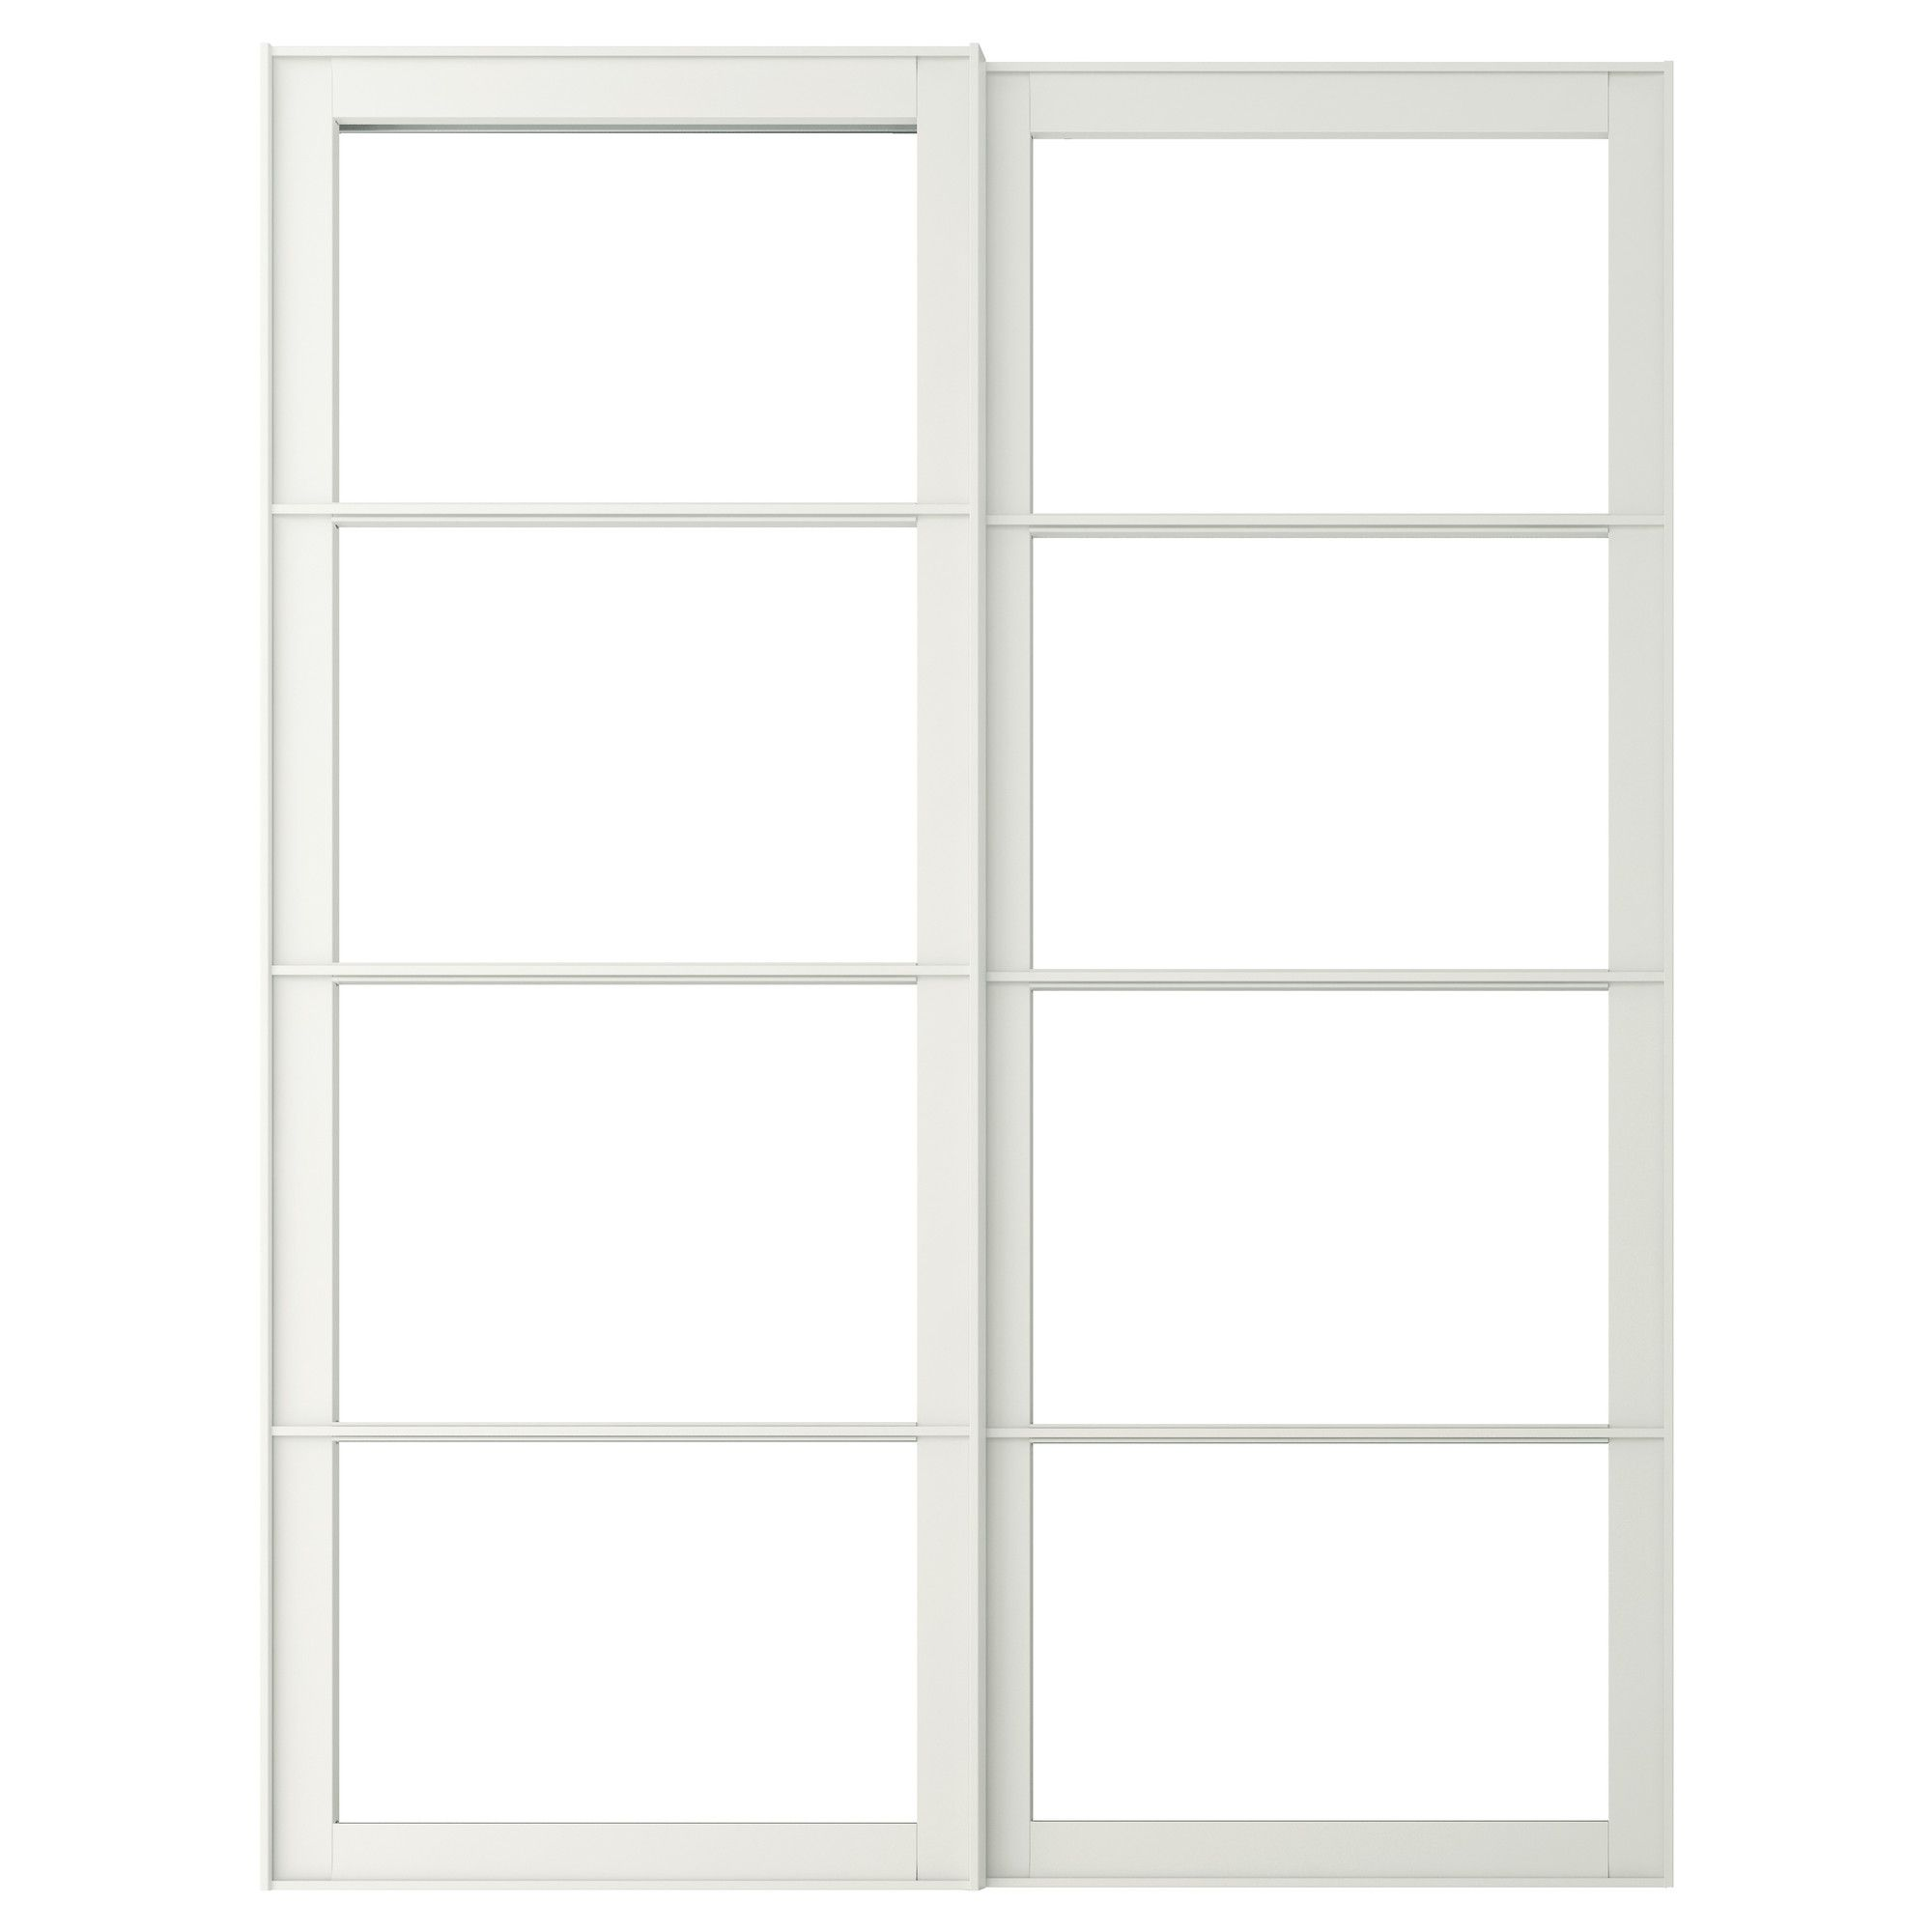 Pax Mehamn Pax Wardrobe Black Brown Mehamn White Ikea Products Pinterest